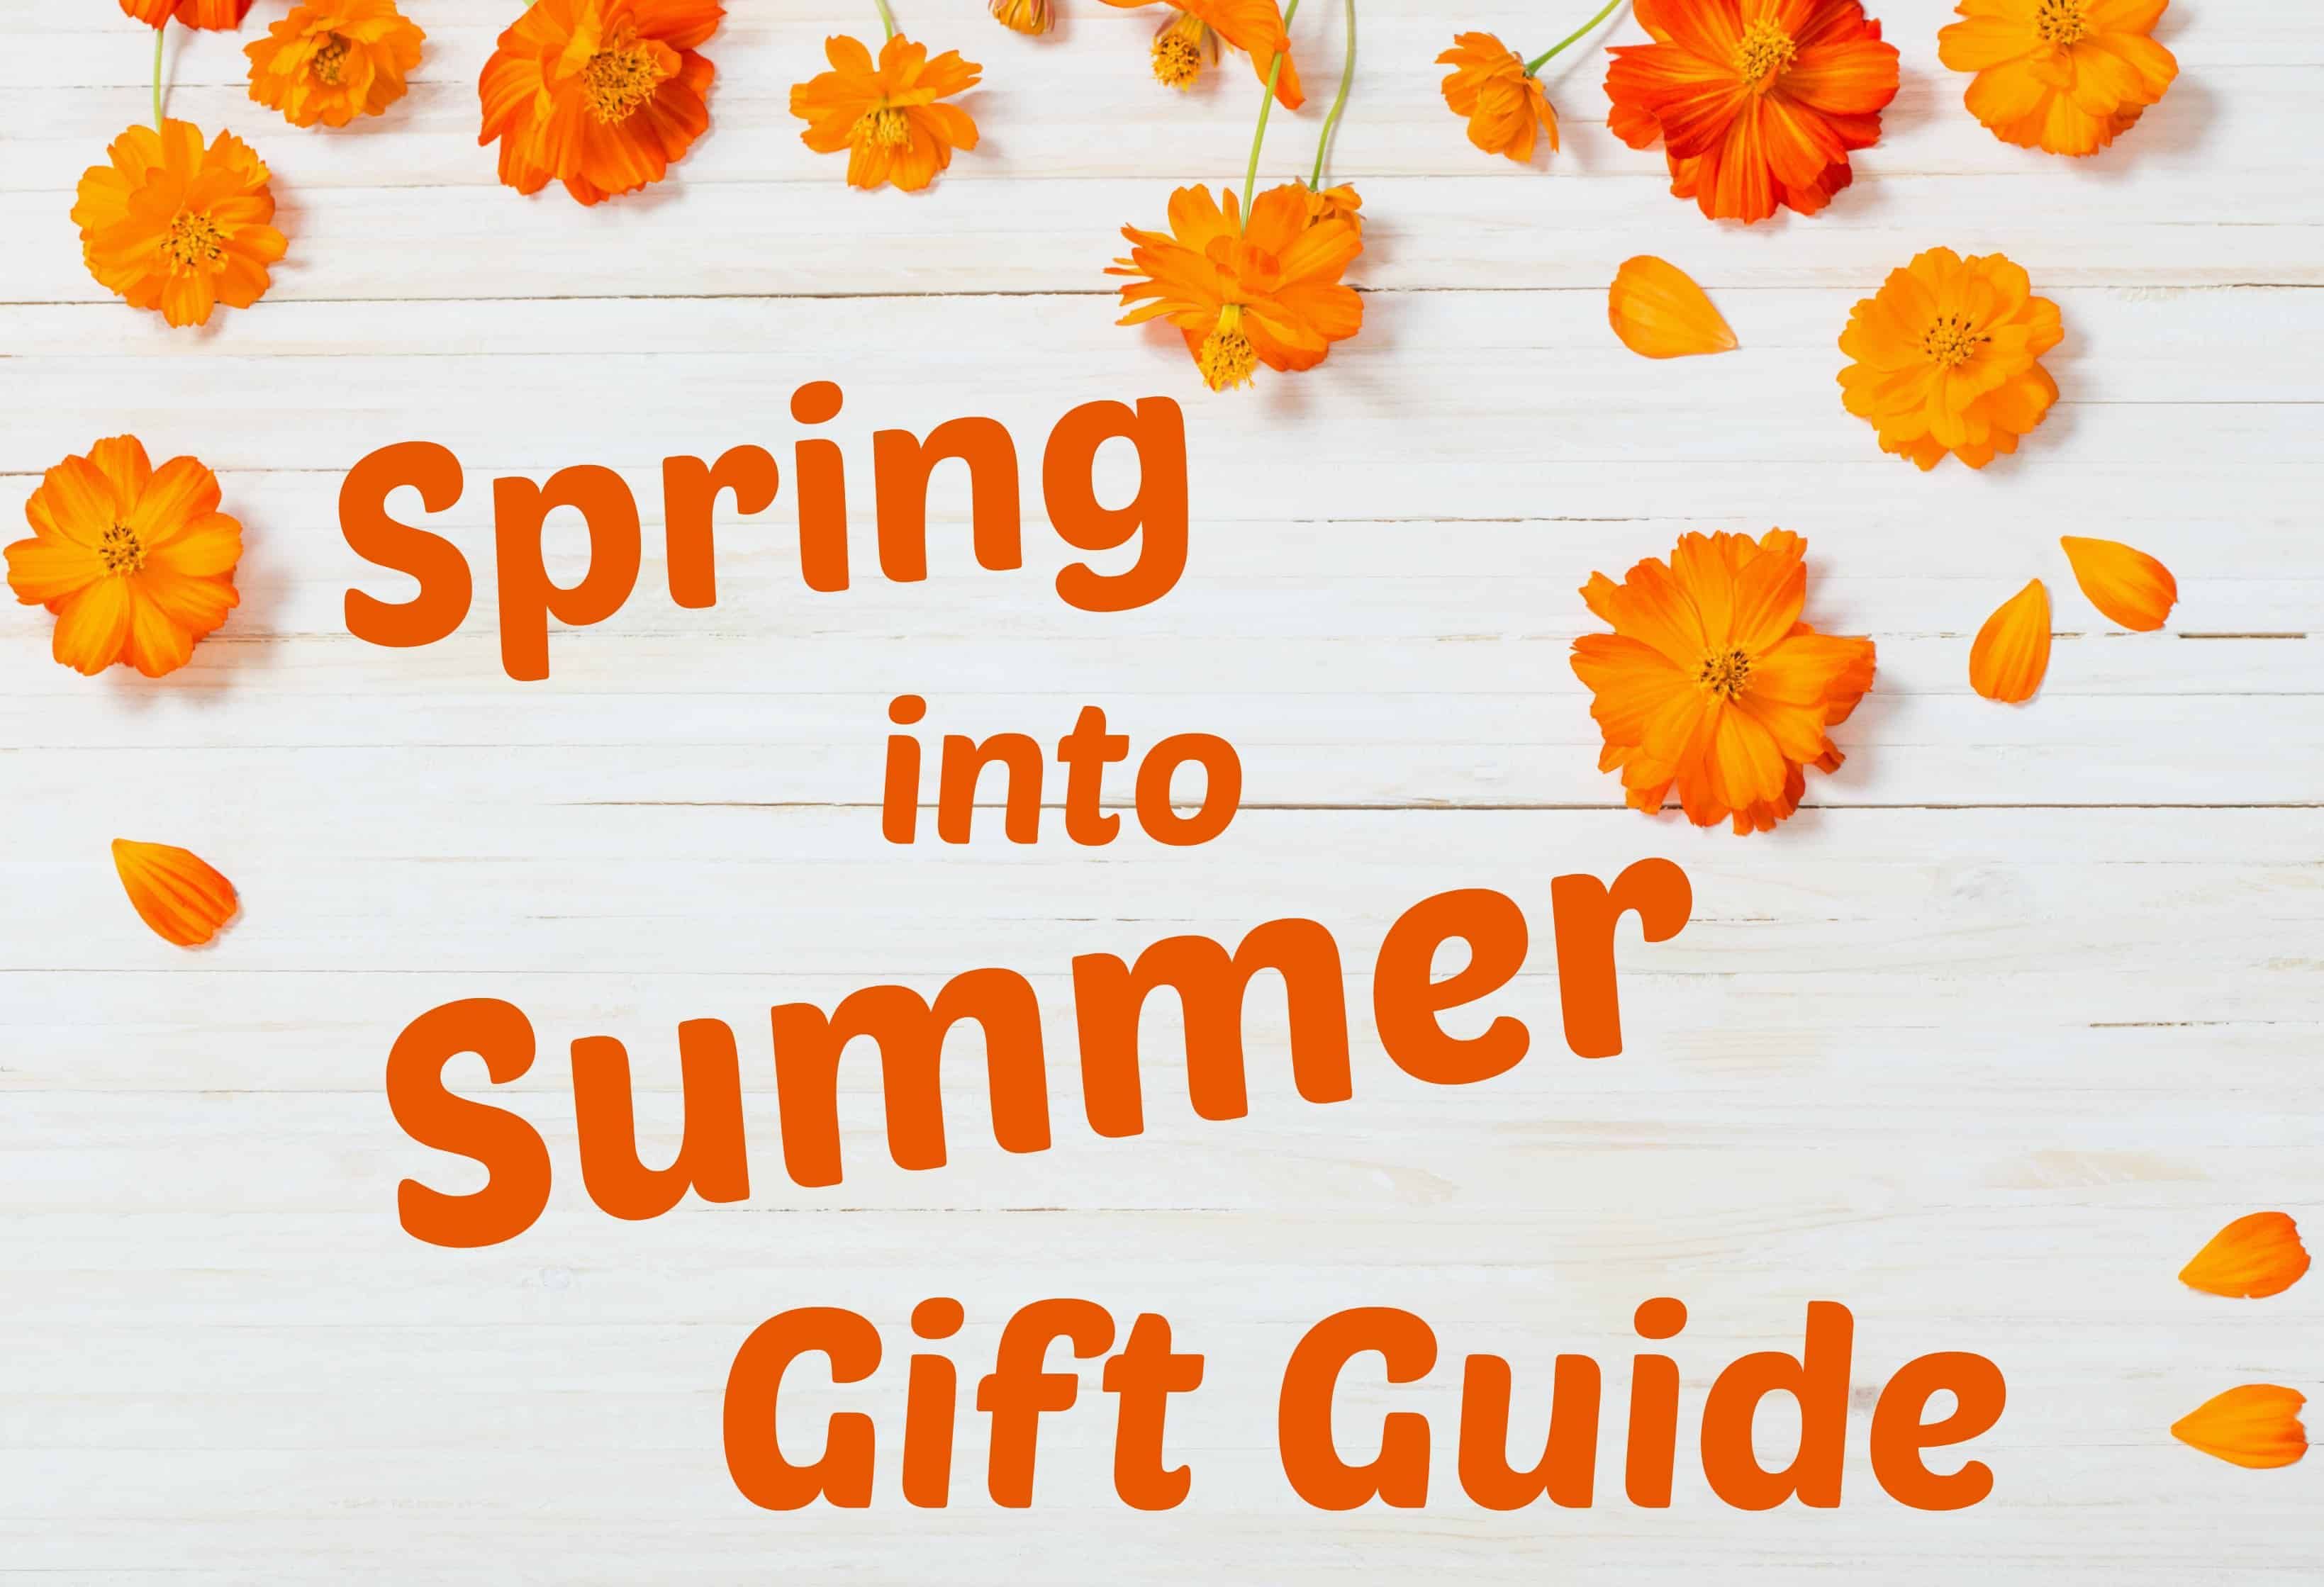 Spring into Summer Gift Guide